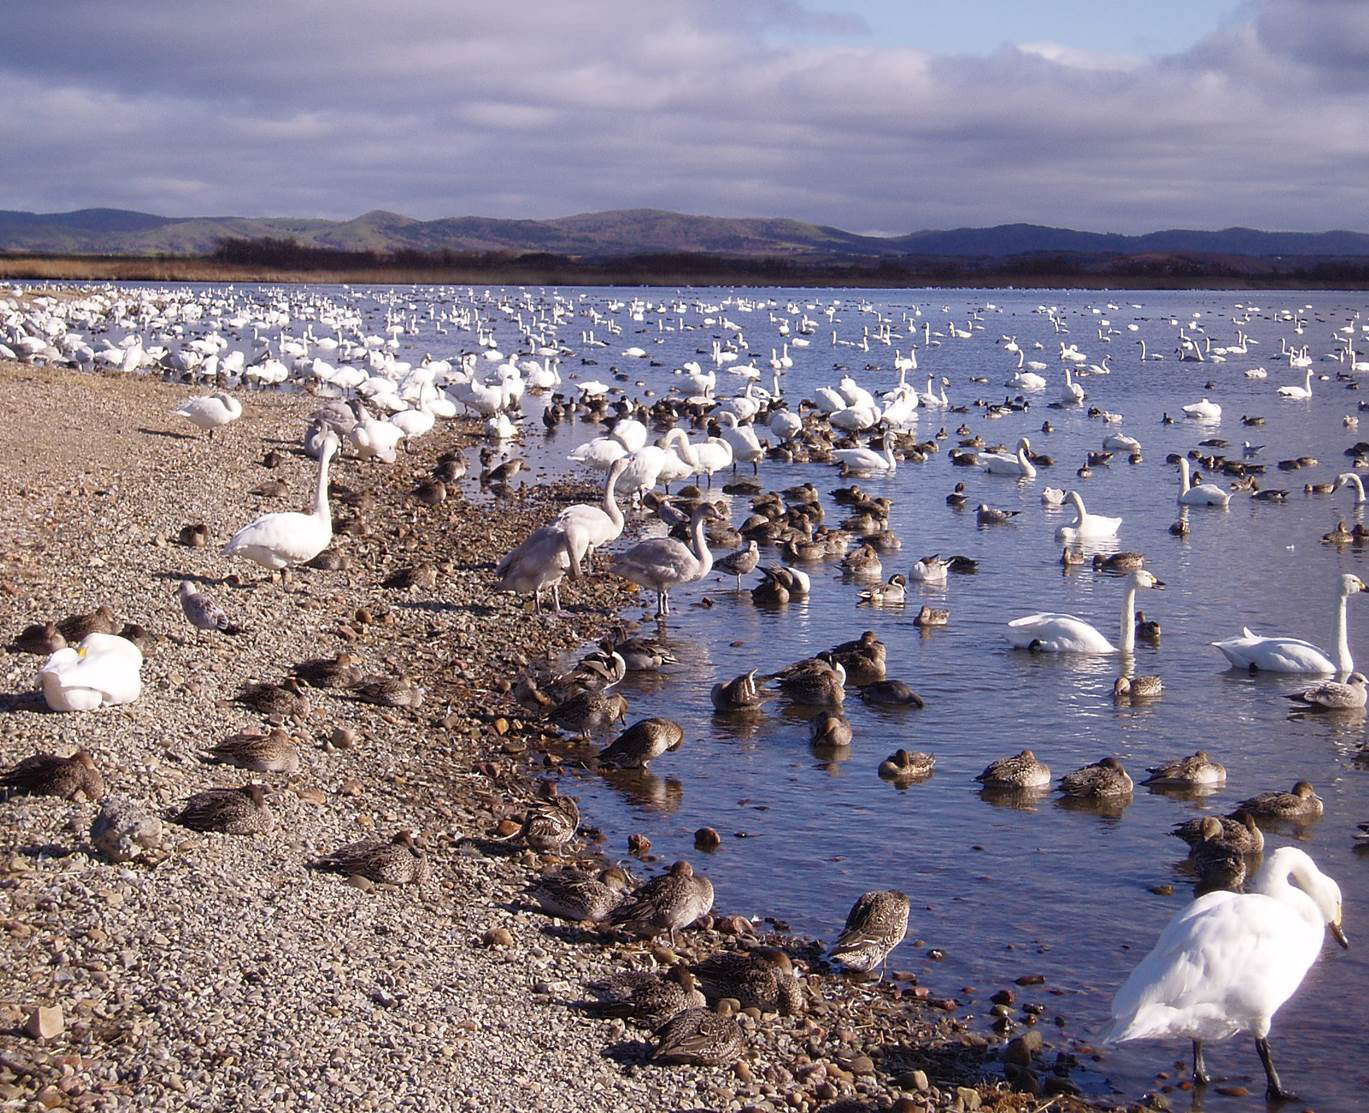 study of bird migration Every autumn, over 500 million birds cross israel's airspace, heading south to warming weather in africa israel sits on the junction of three continents, says dr yossi leshem, director of israel's international centre for the study of bird migration.